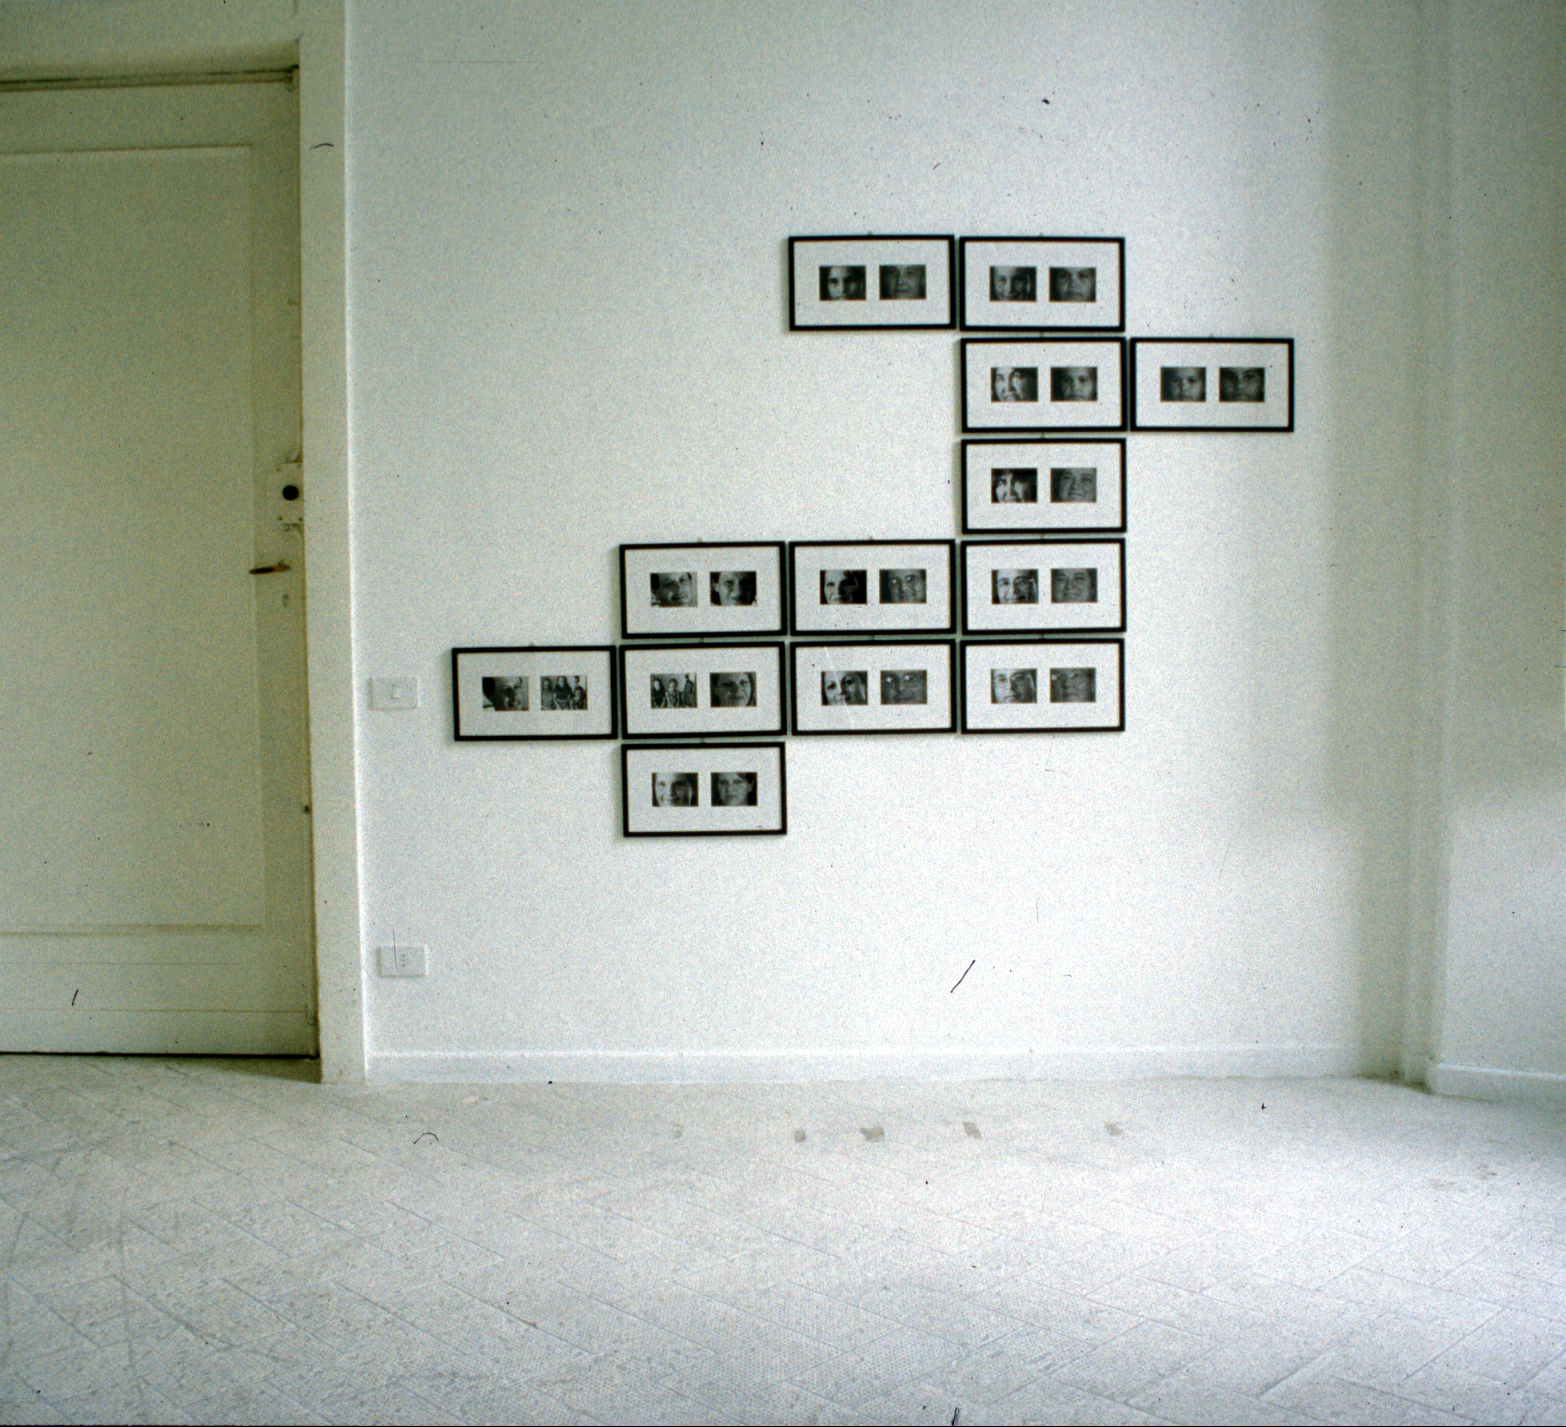 Salvatore Falci, 1998, Silent Communication, foto, Anglosasoni e Anglosassoni, Galleria Casoli Milano, 2000